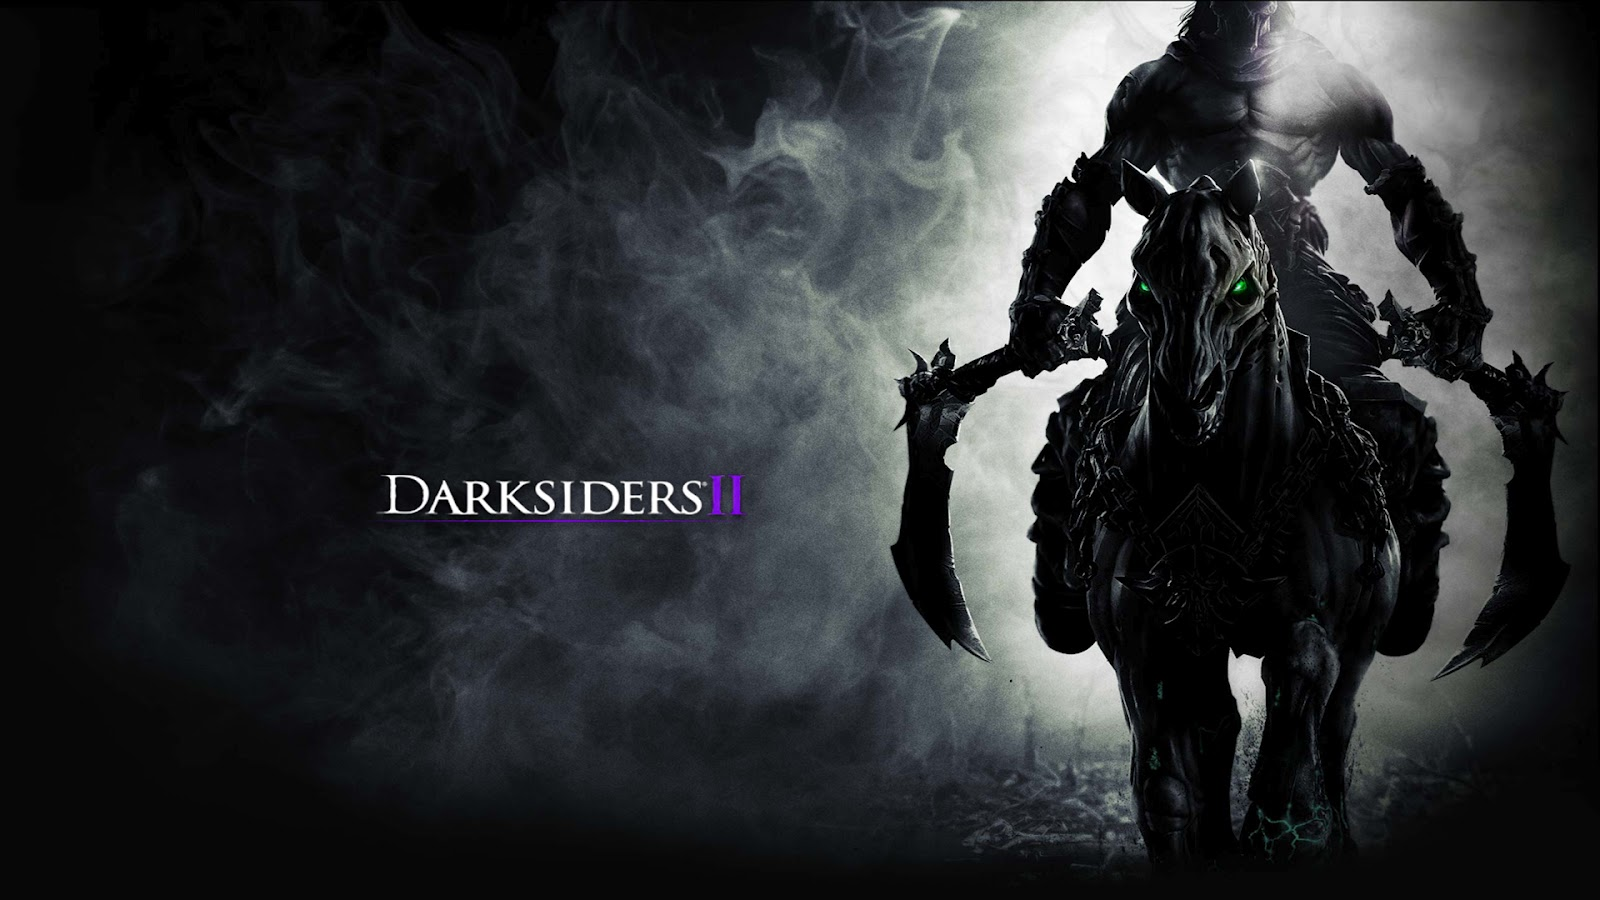 Darksiders 2 Death Rides HD Wallpaper 1080p PiCsHoliC 1600x900